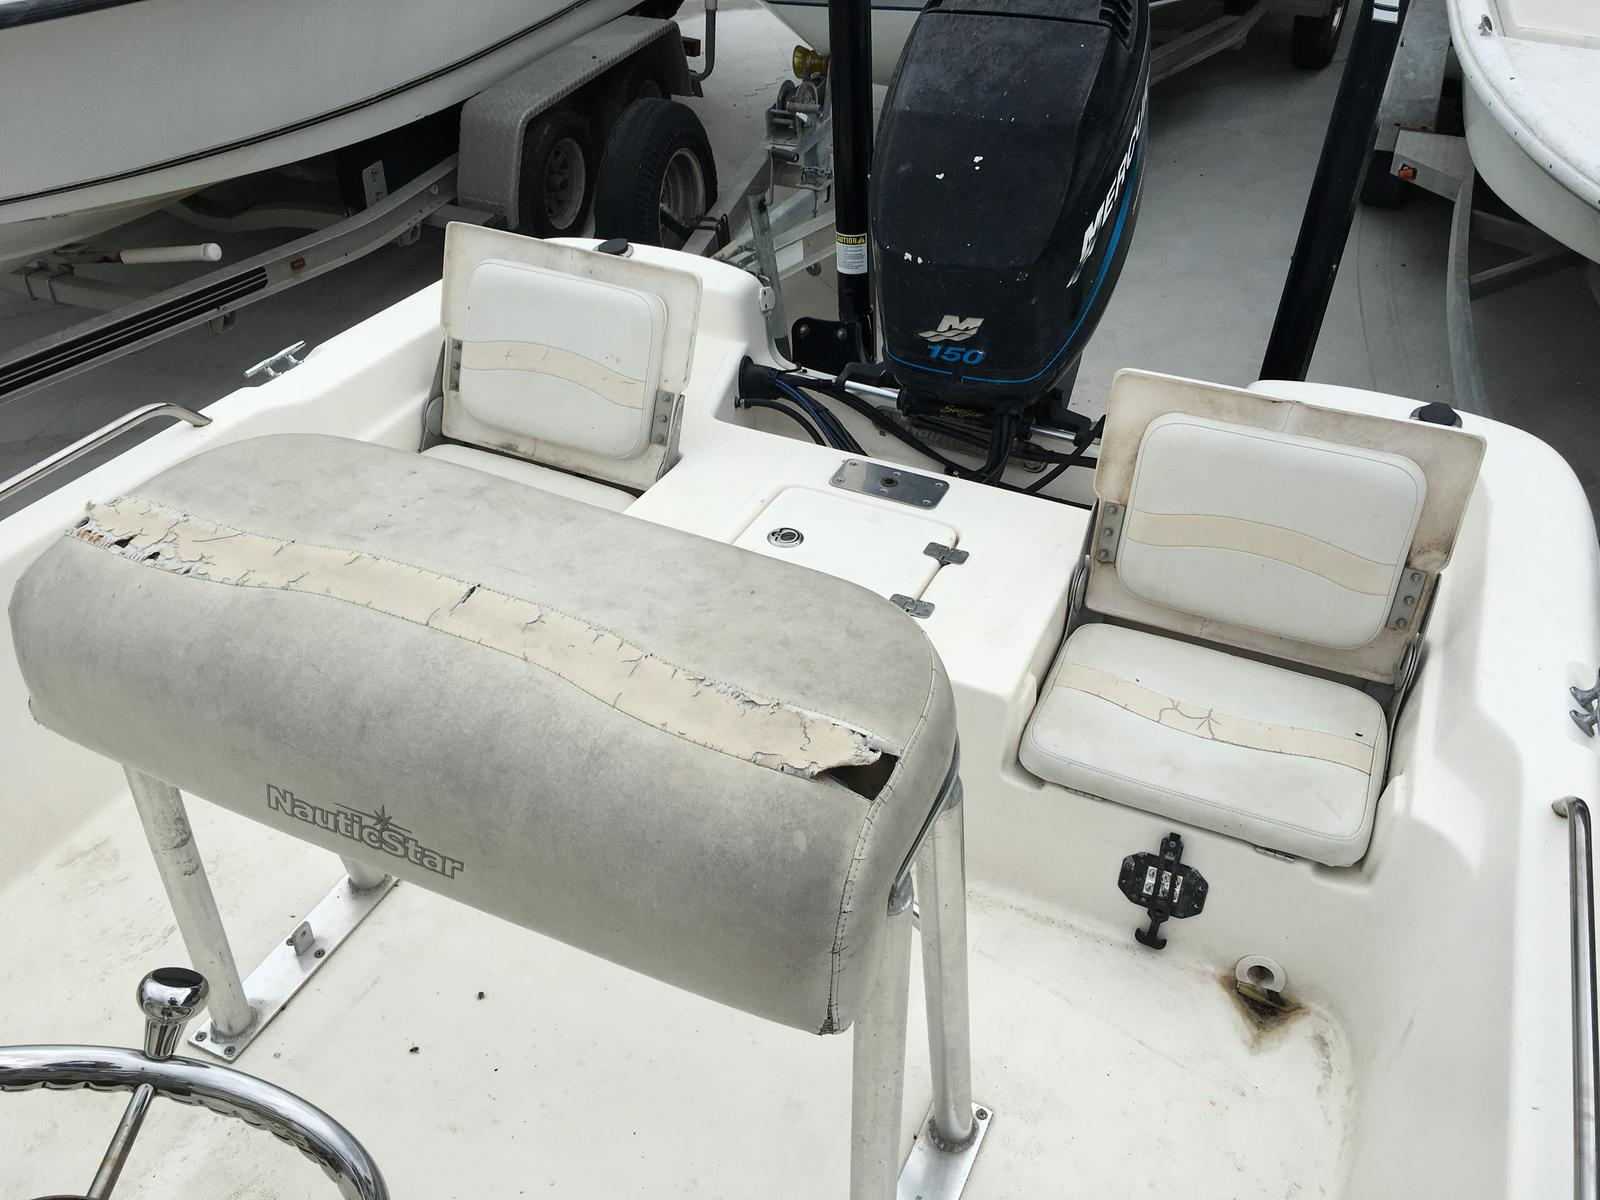 2006 Nautic Star boat for sale, model of the boat is 2110 & Image # 9 of 11